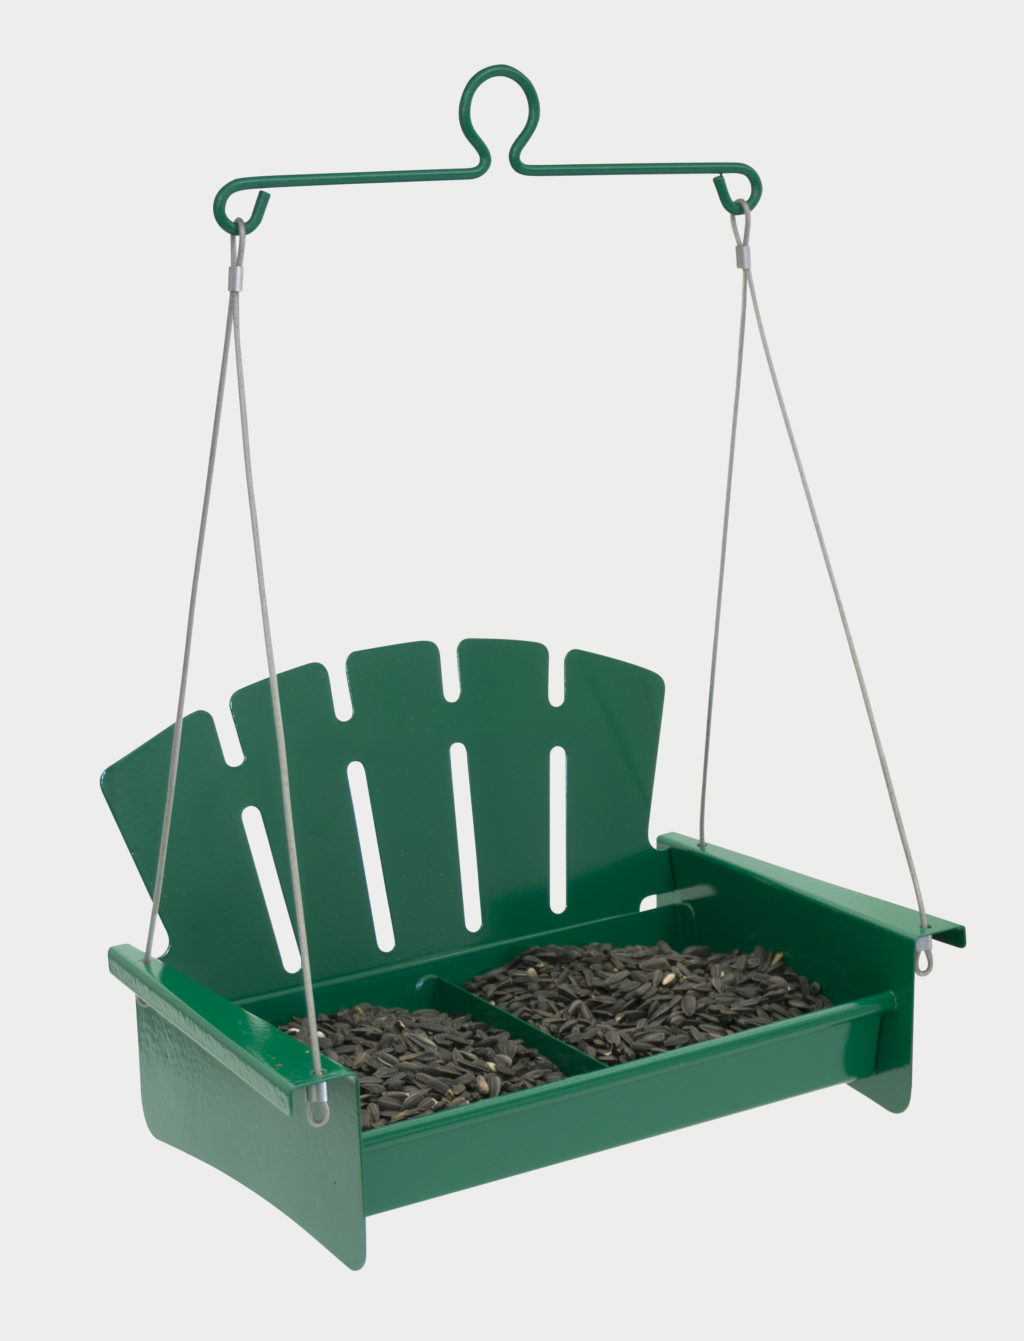 Green Snacks 'n' Treats Platform Swing filled with sunflower seeds